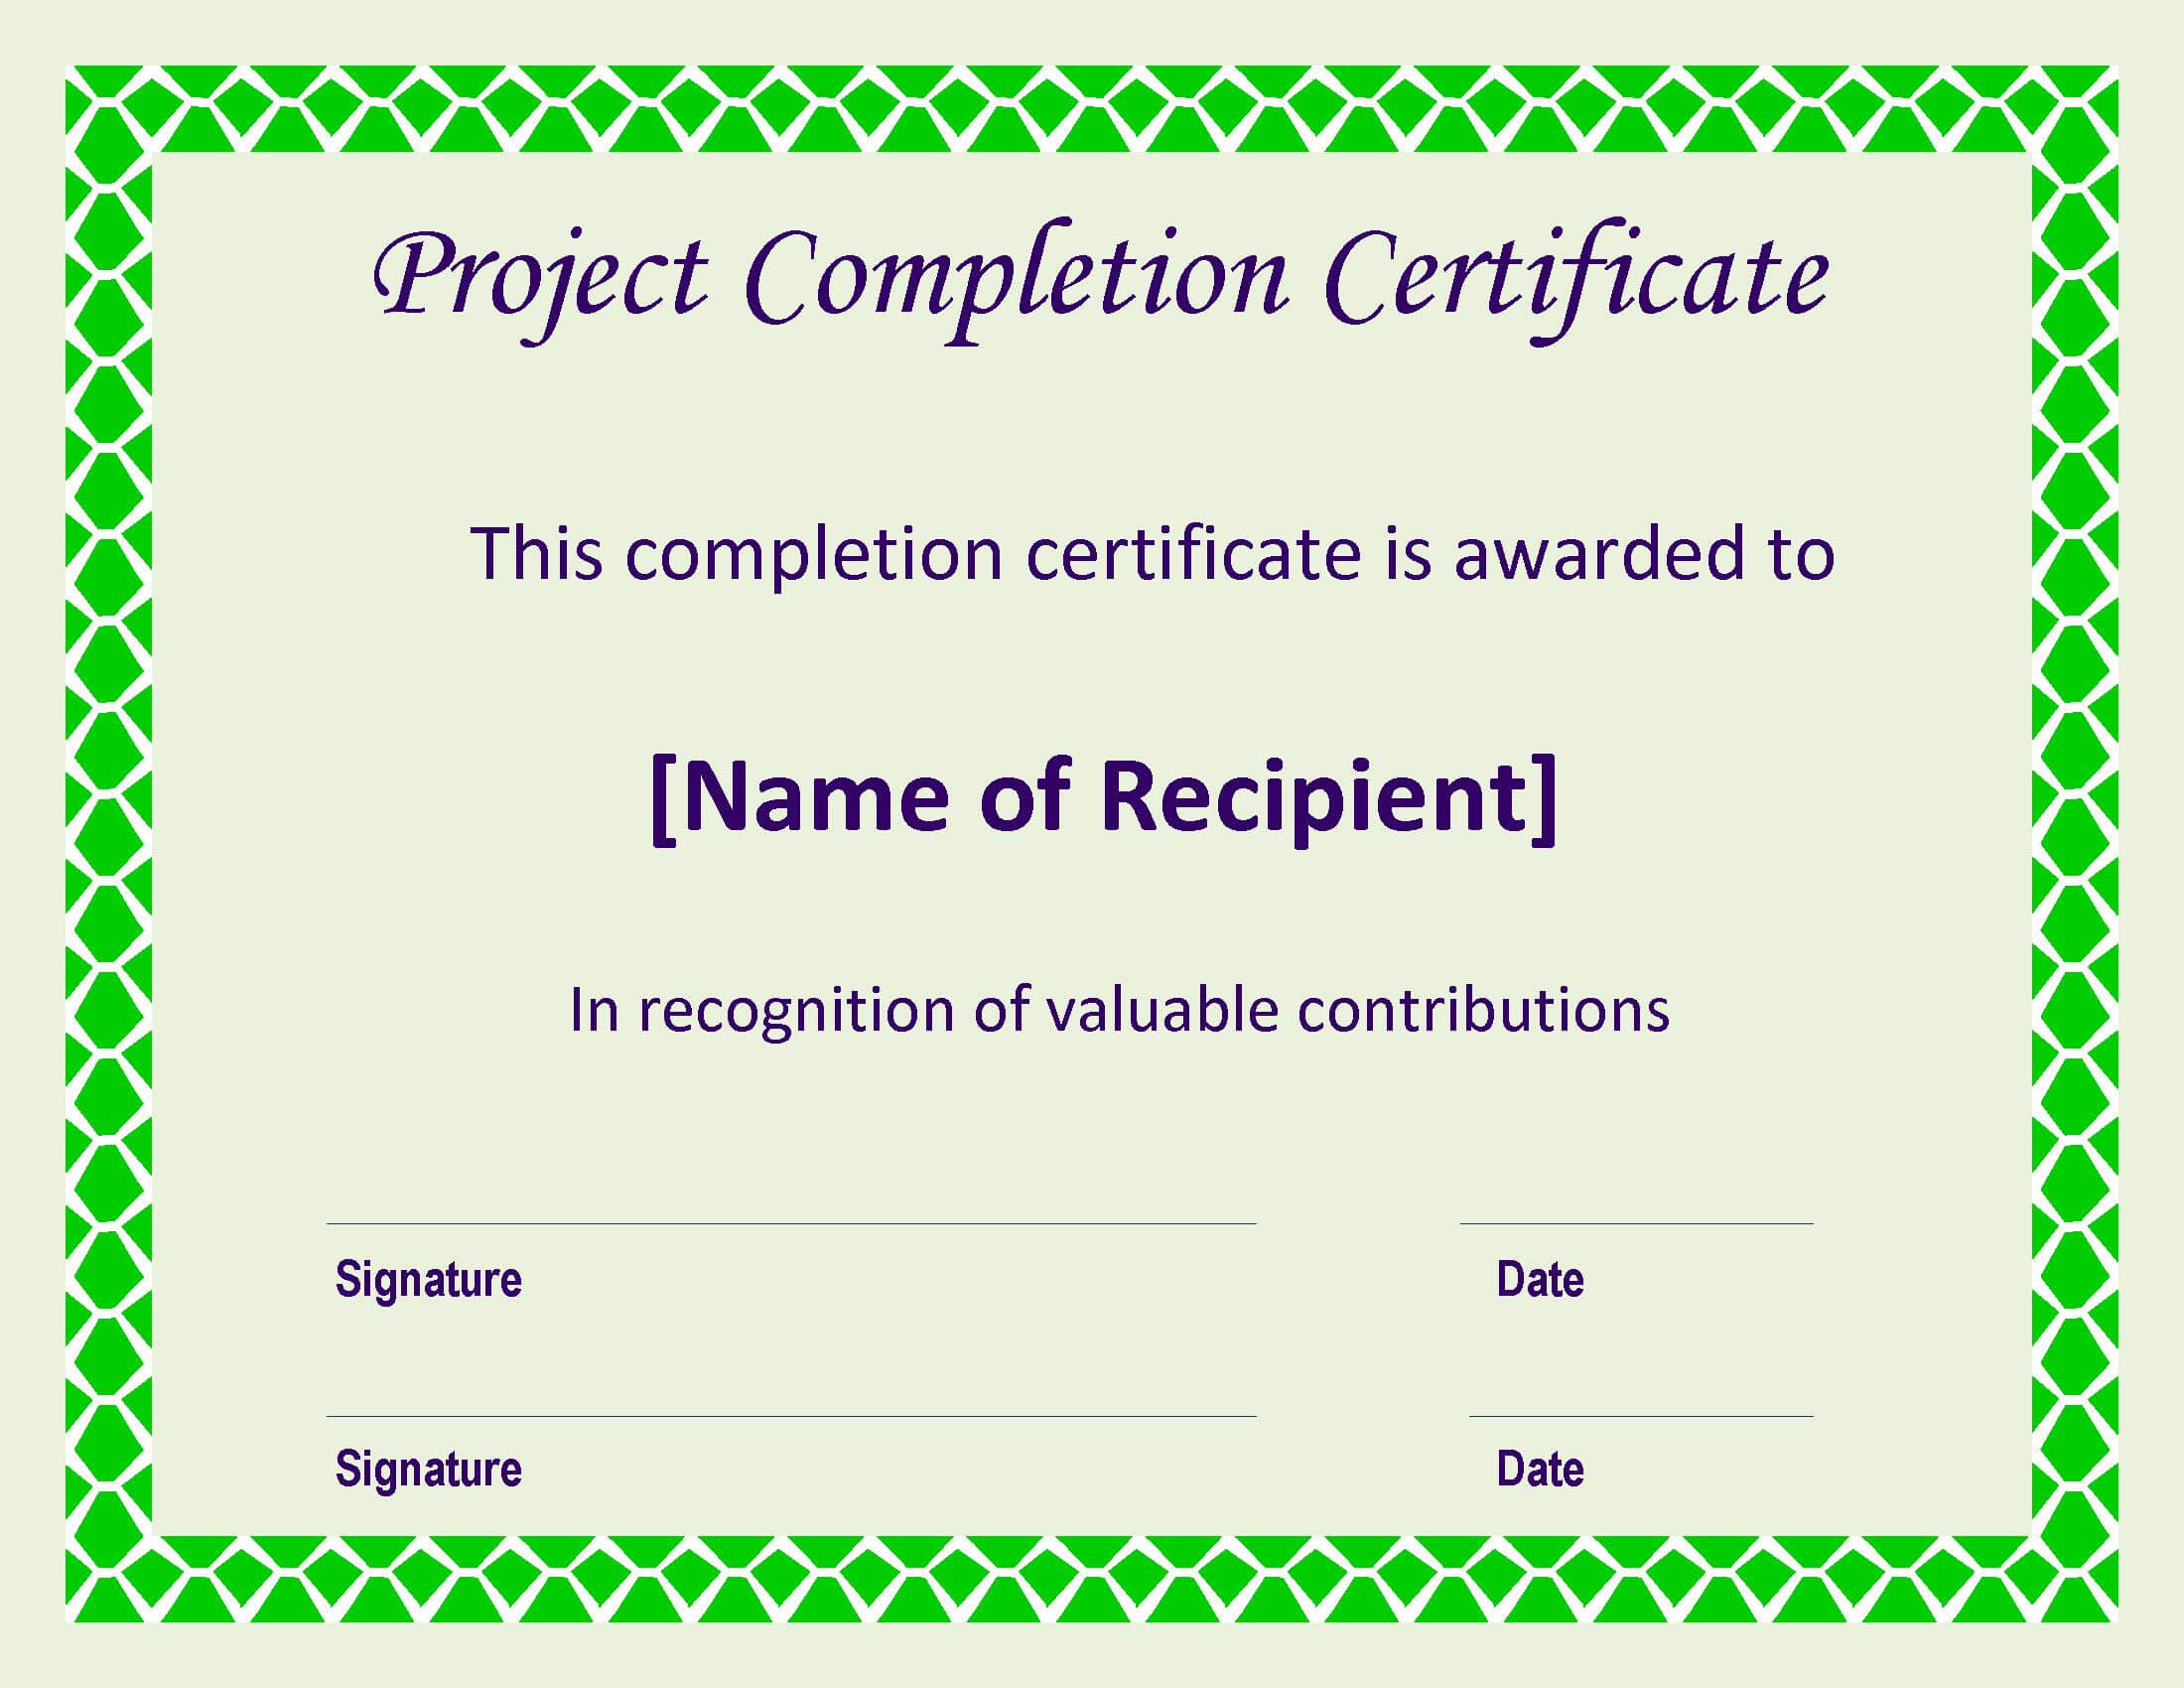 Certificate Of Completion Project | Templates At intended for Certificate Template For Project Completion